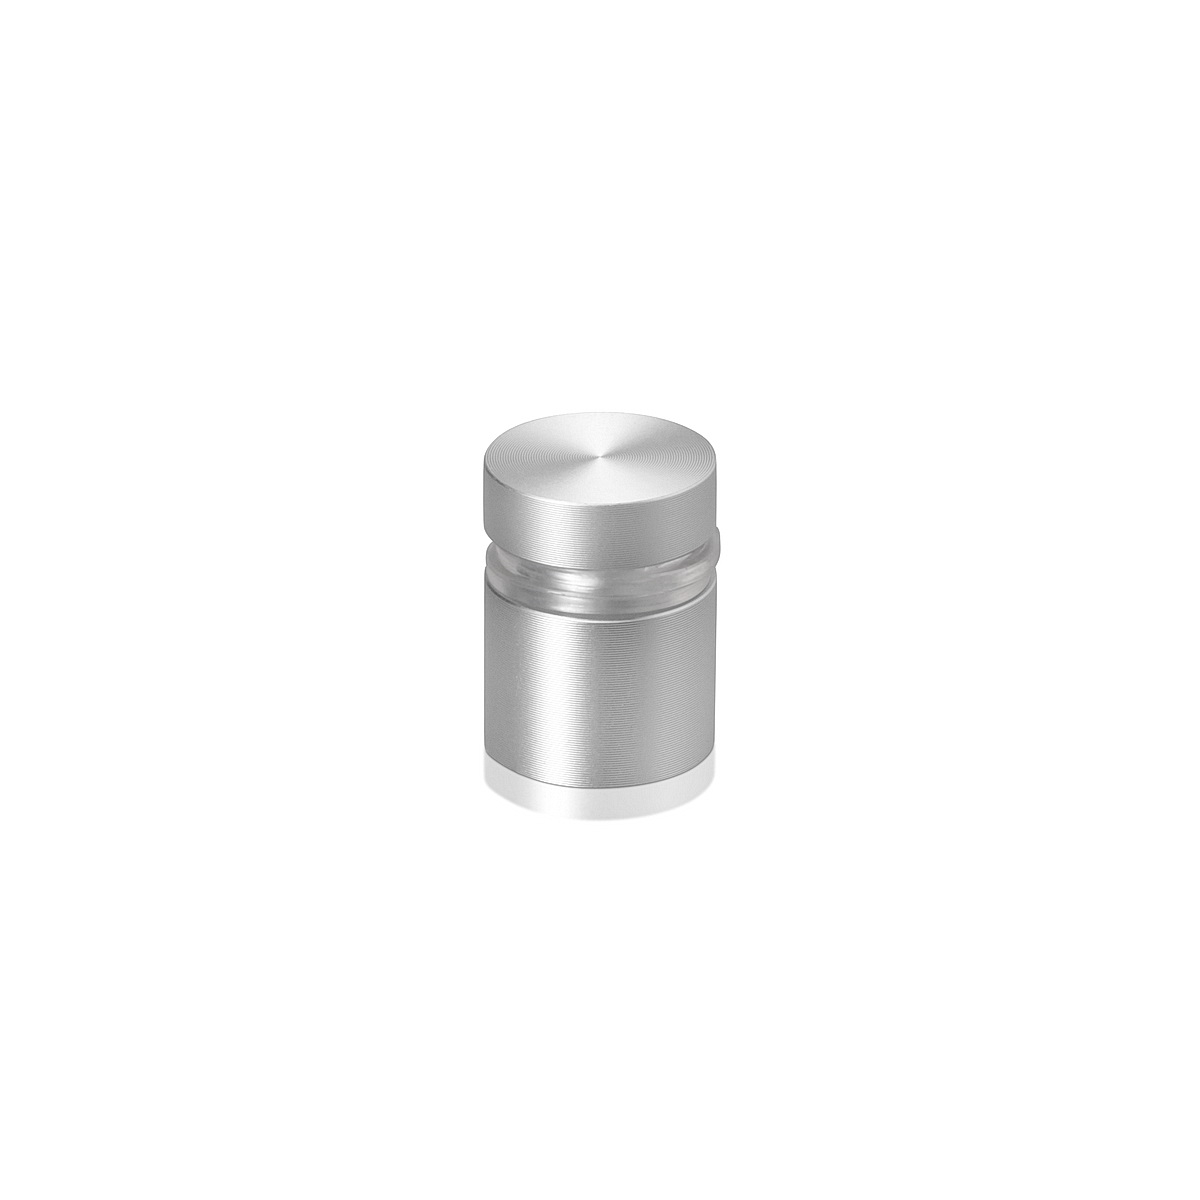 5/8'' Diameter X 1/2'' Barrel Length, Aluminum Flat Head Standoffs, Clear Anodized Finish Easy Fasten Standoff (For Inside / Outside use) Tamper Proof Standoff